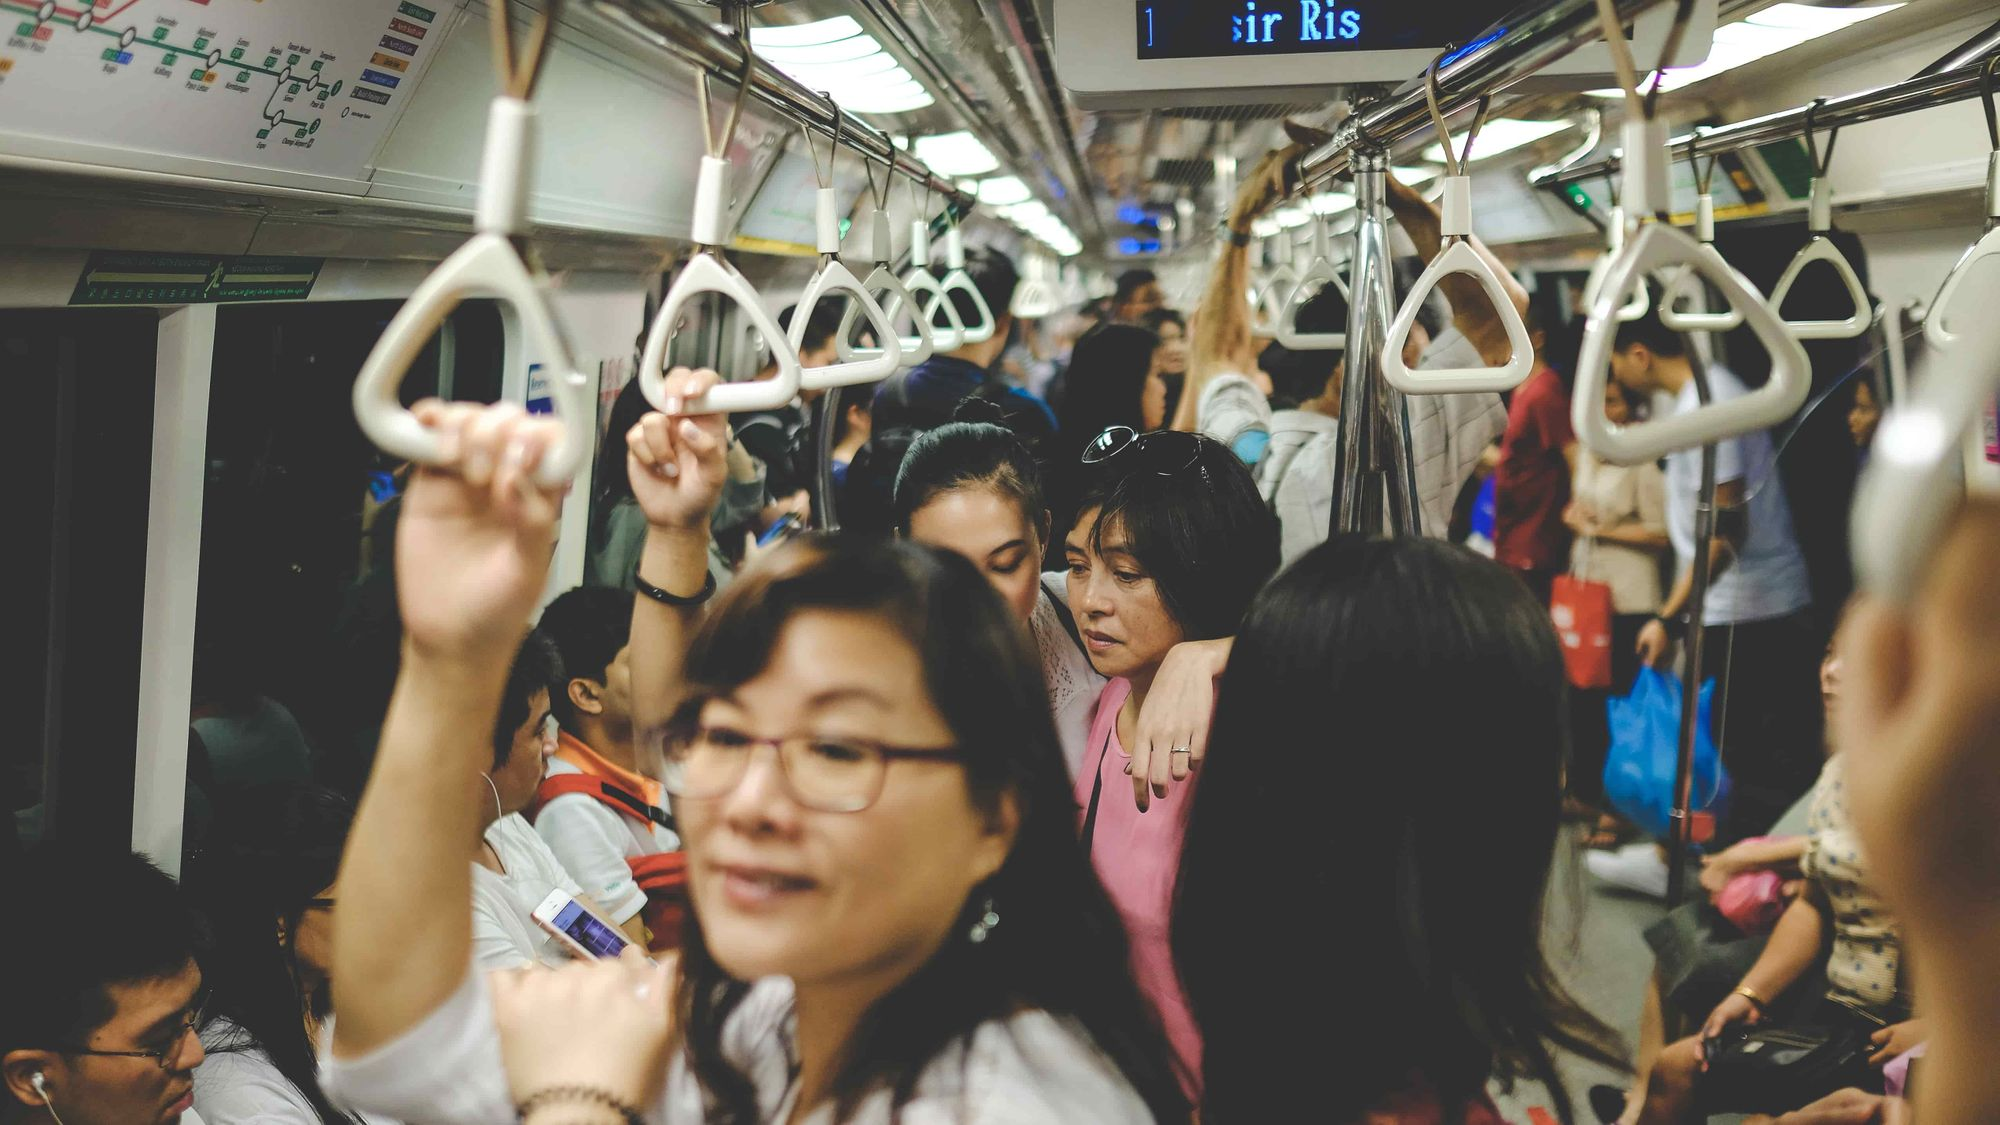 People crowding in a public transportation